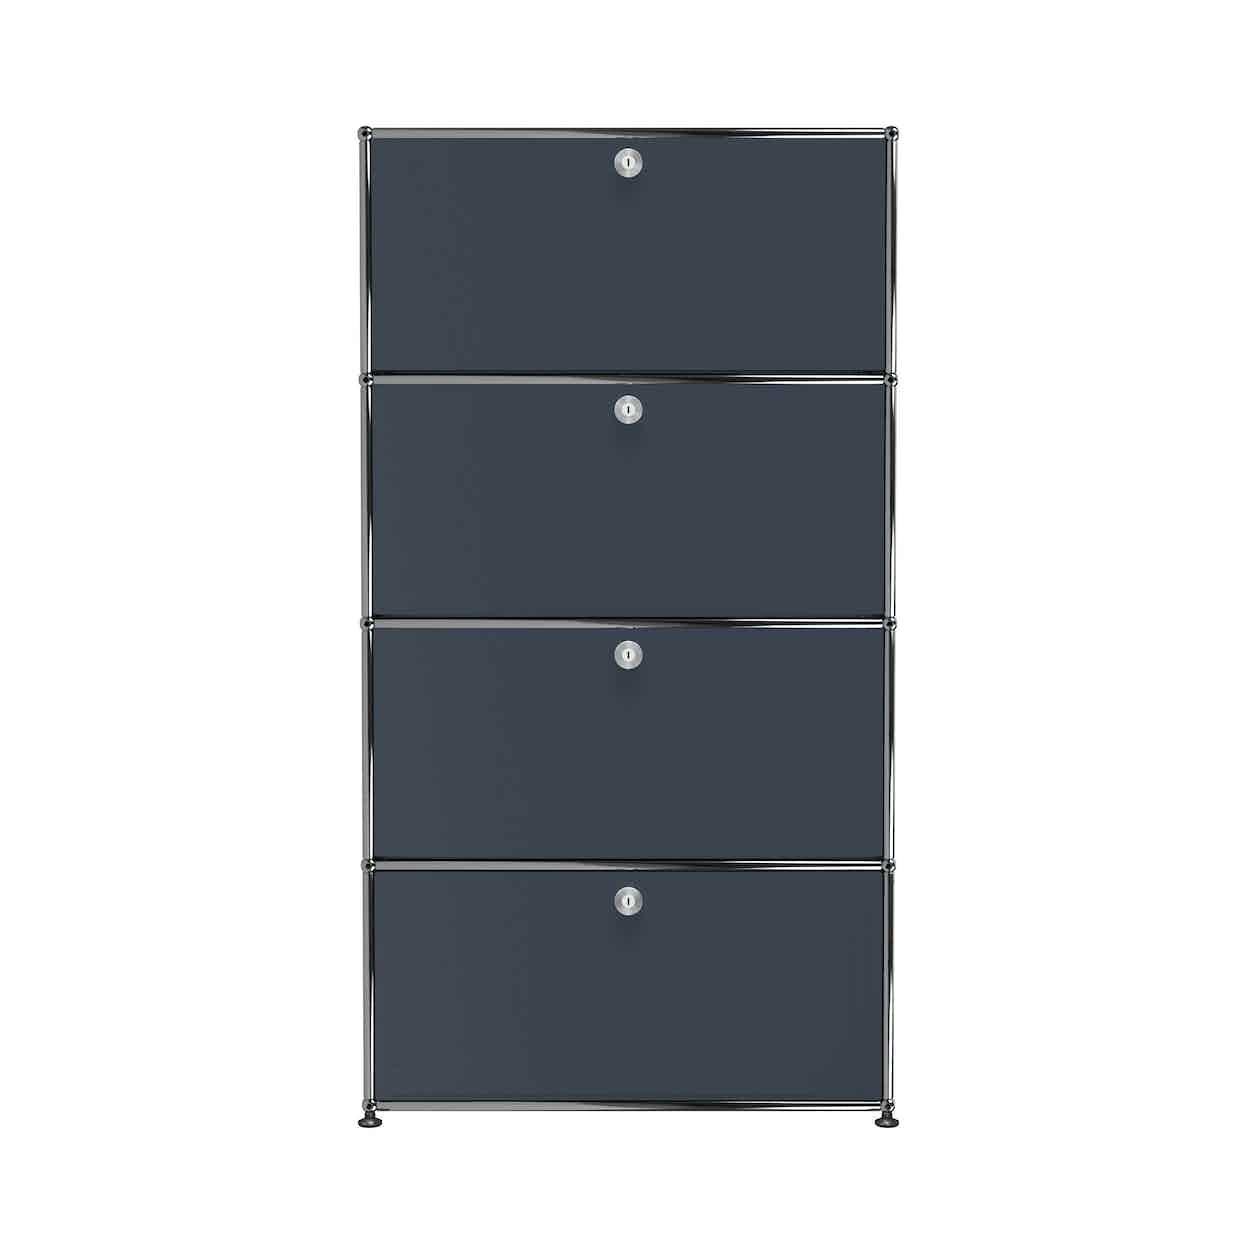 Usm-quick-ship-Haller-Storage-S118A-grey-haute-living